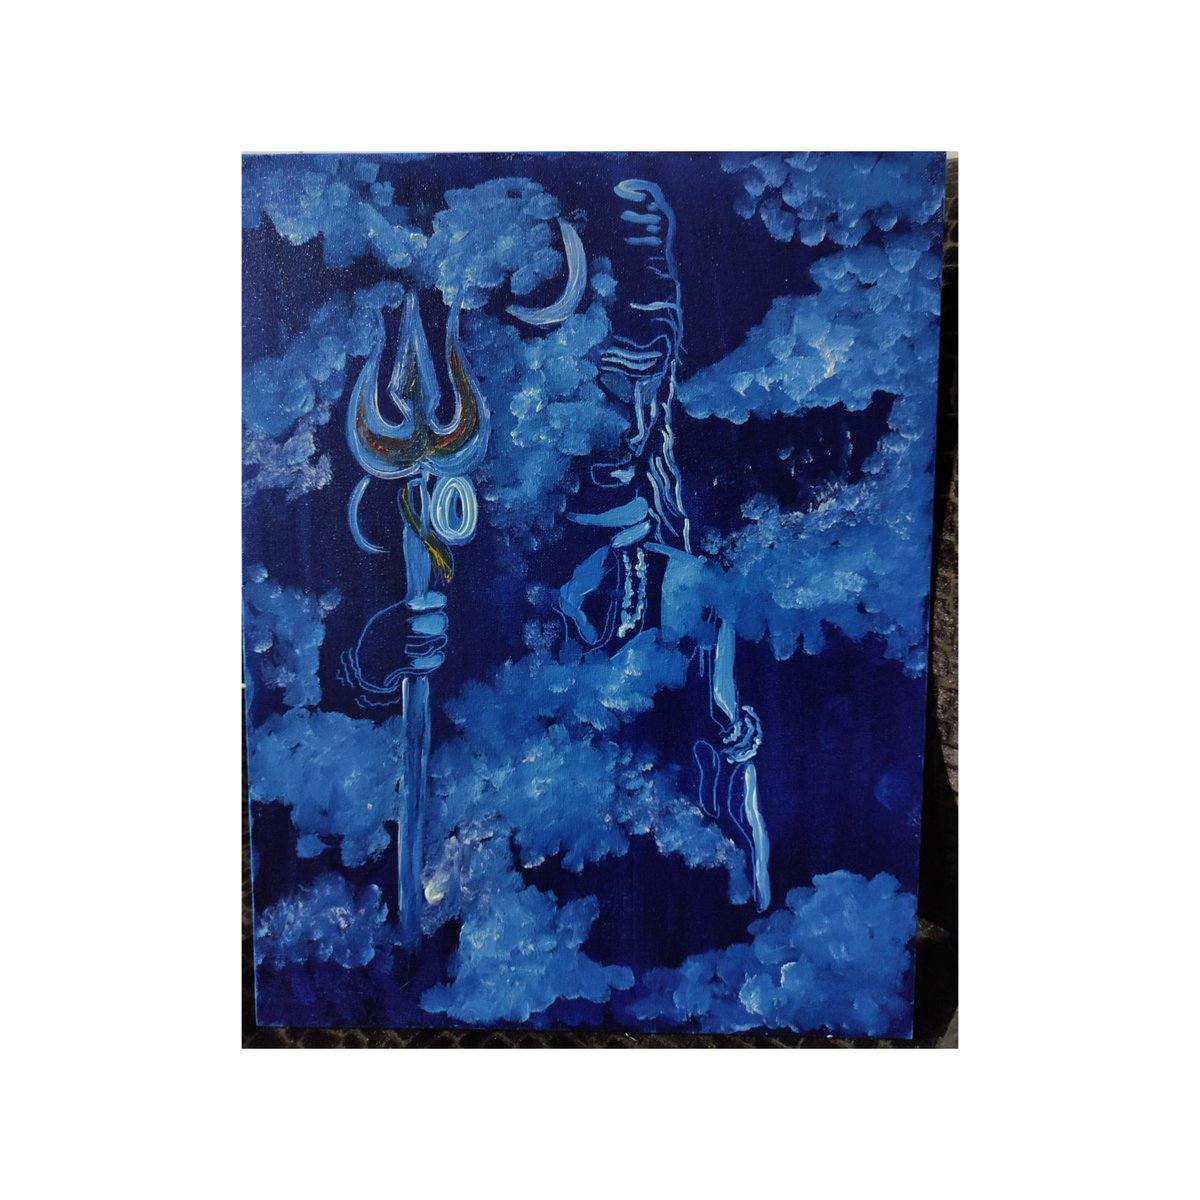 Come what may, you must never tolerate evil. ~Lord Shiva~  #writerslift  #paintings #art #ArtLovers #PaintLuv #oilpastels #poetrycommunitypic.twitter.com/JvqcGfGvlz